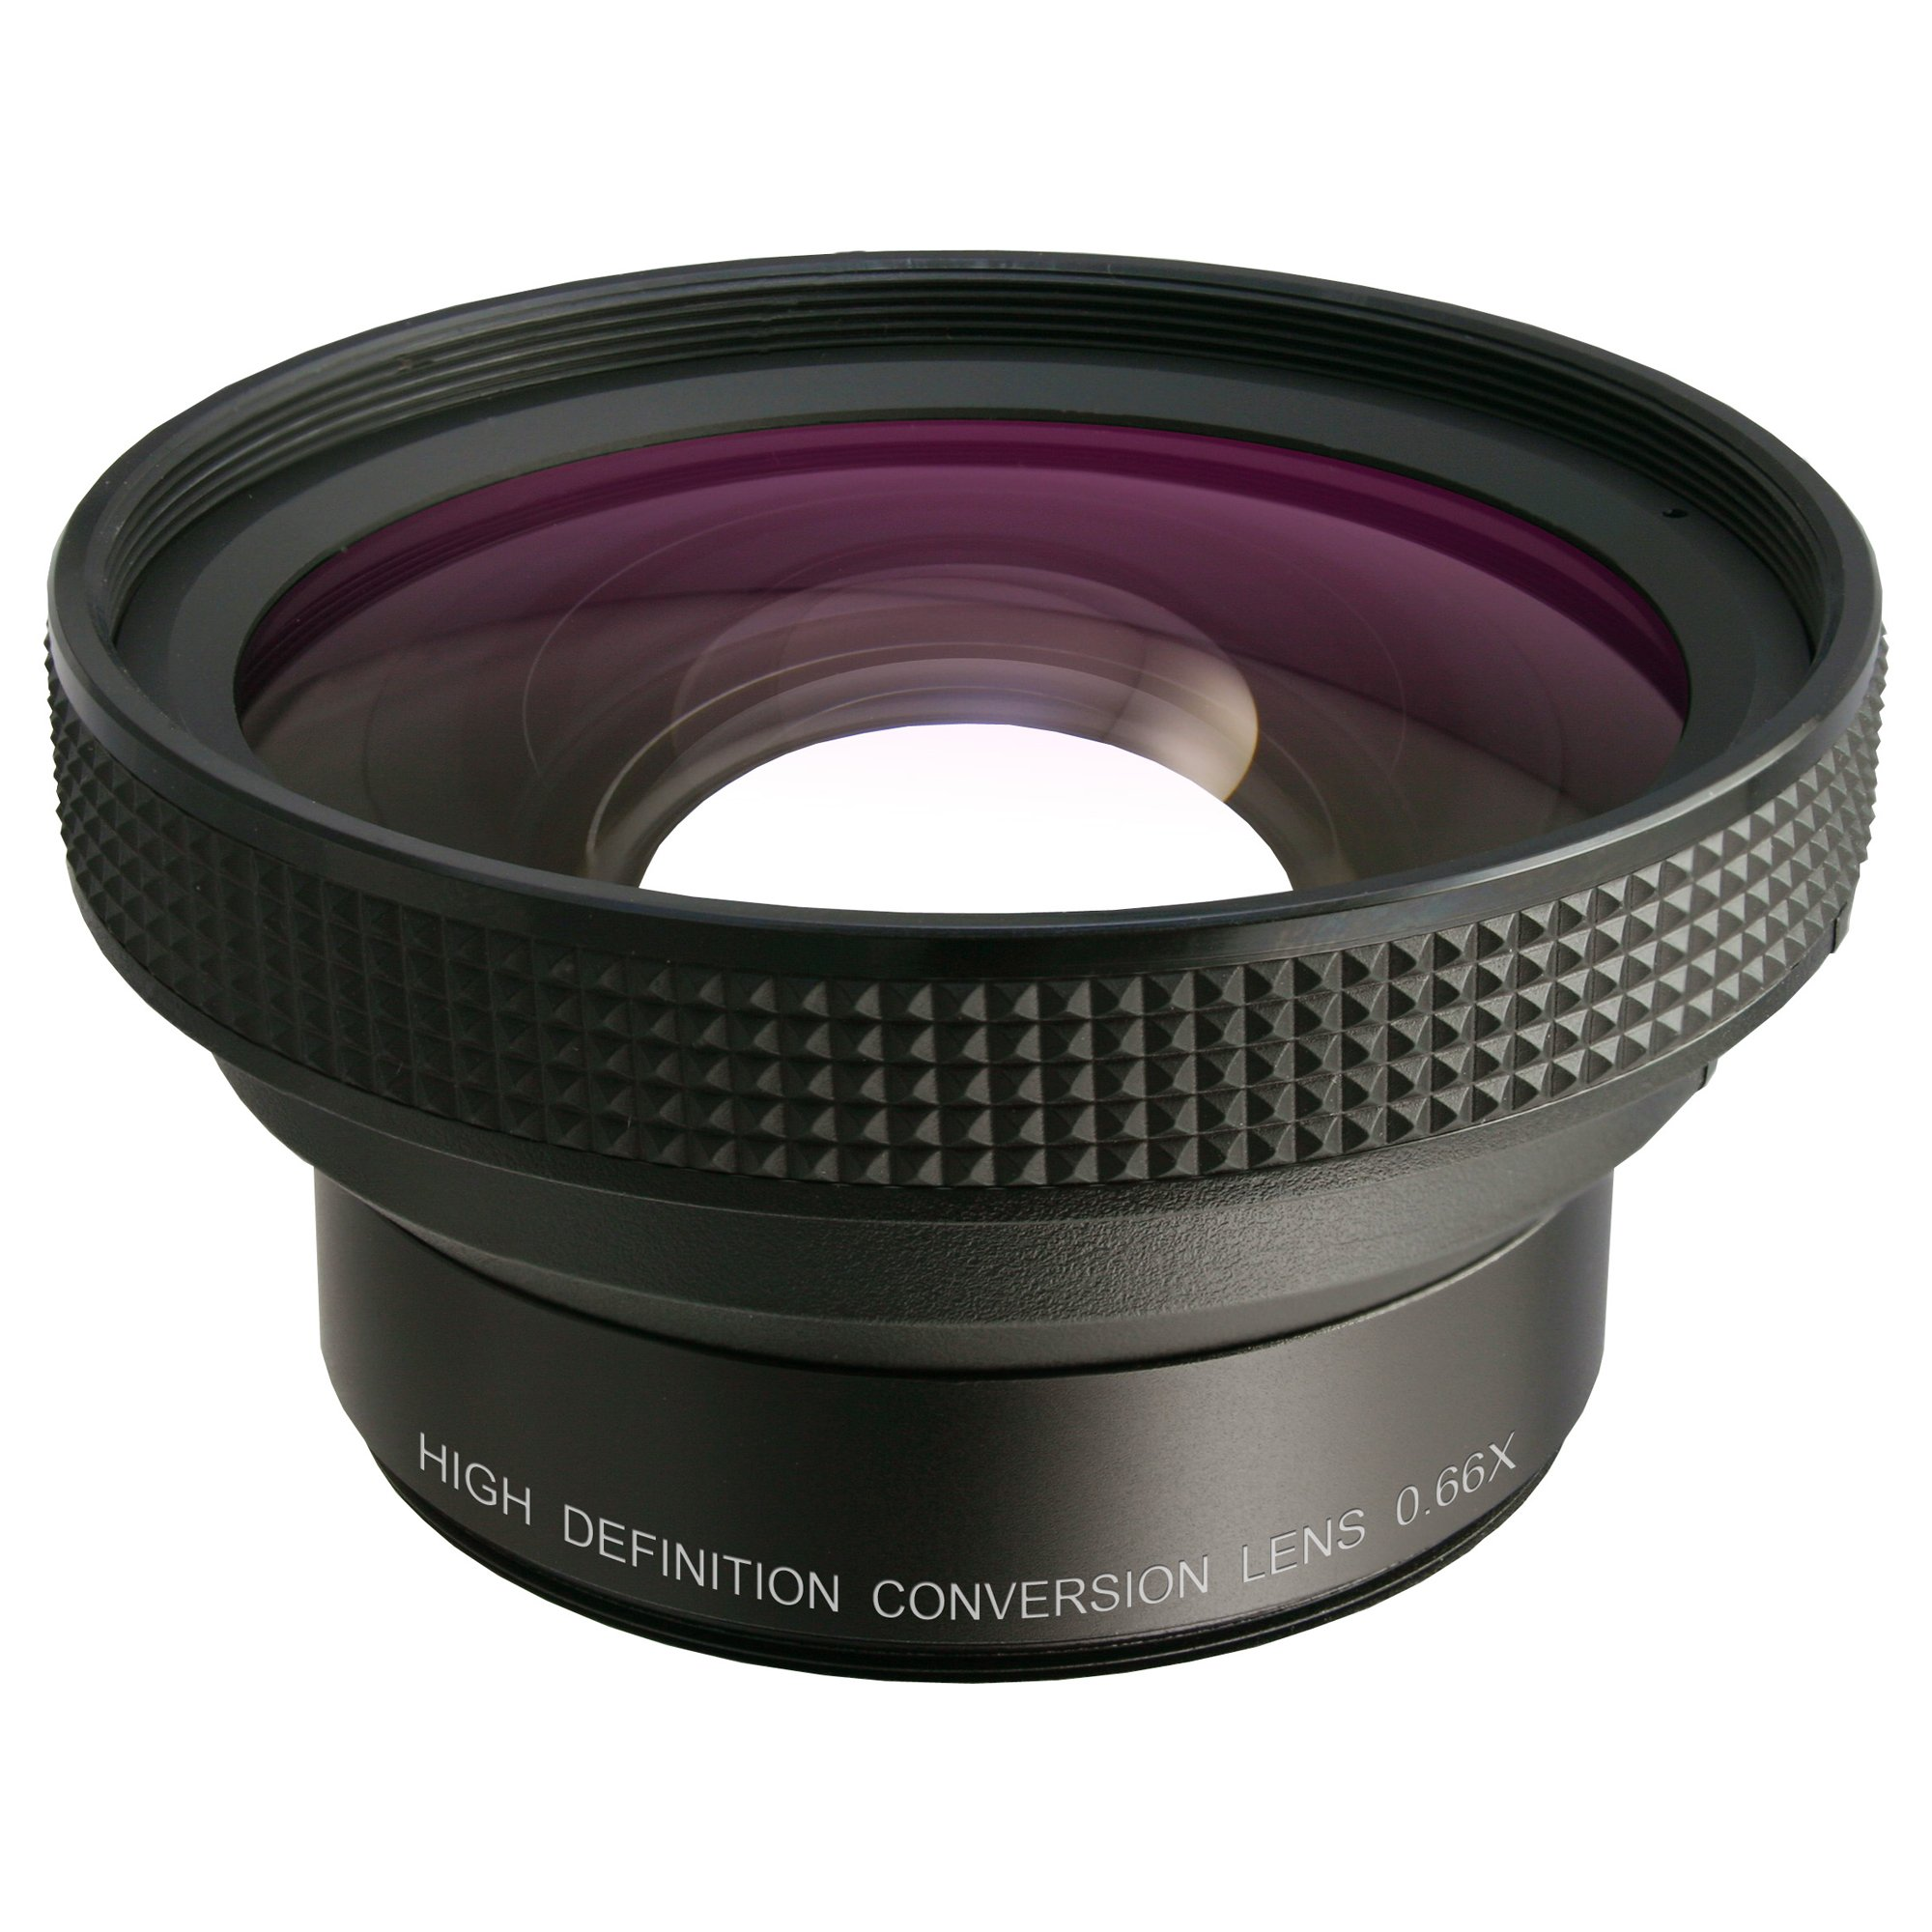 Super Quality Wideangle Lens 0.66X(front filter size: 72mm/rear size: 49mm) packed in display box by Raynox